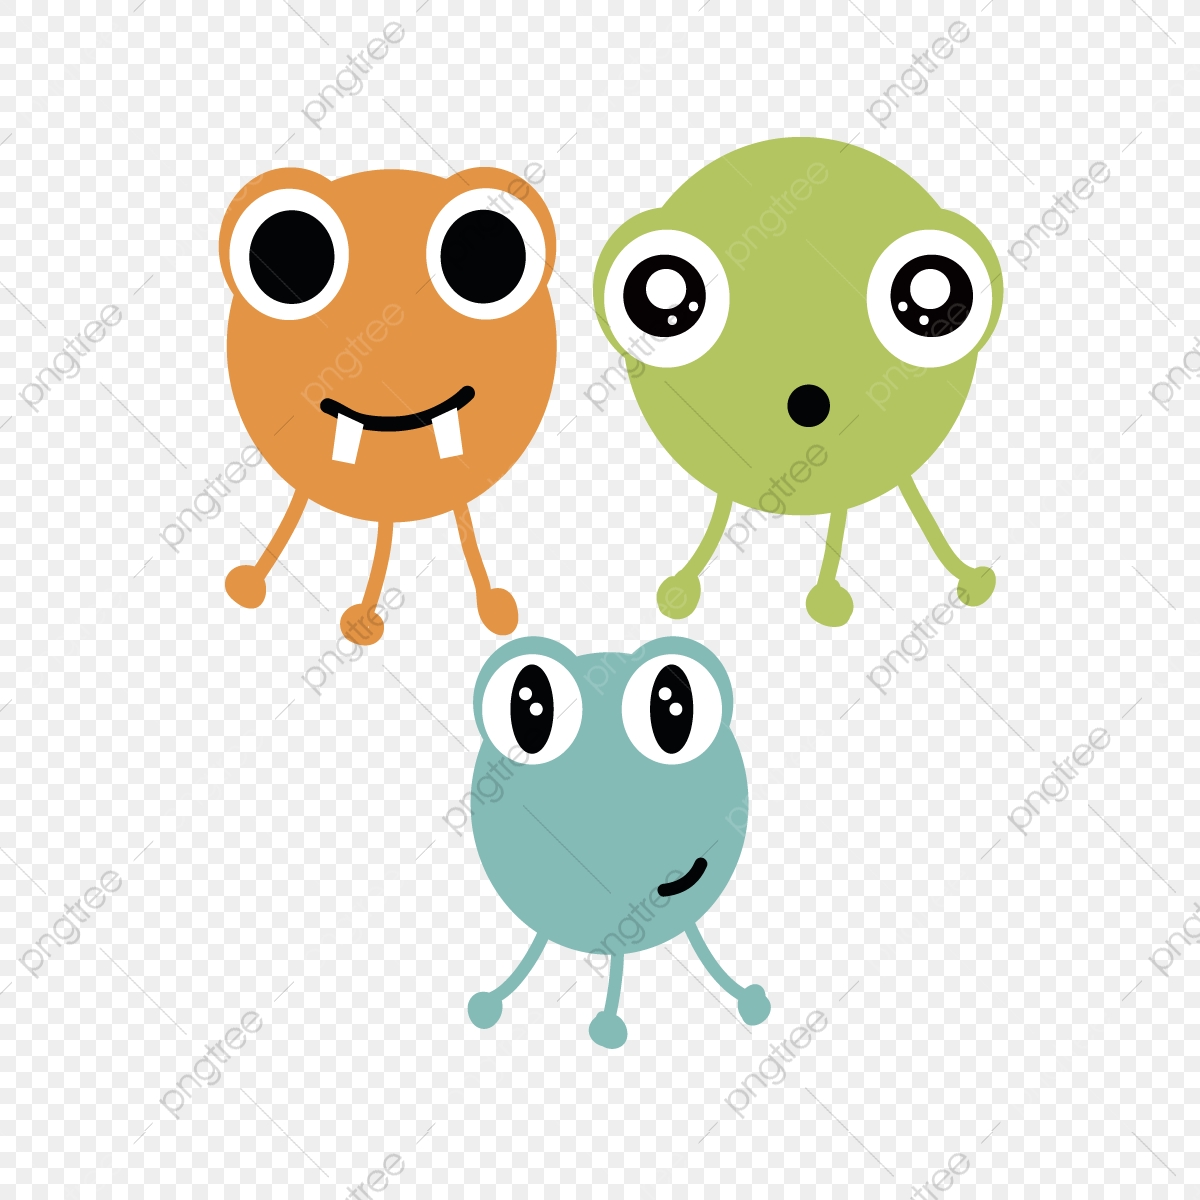 Cute Monsters Png Vector Psd And Clipart With Transparent Background For Free Download Pngtree